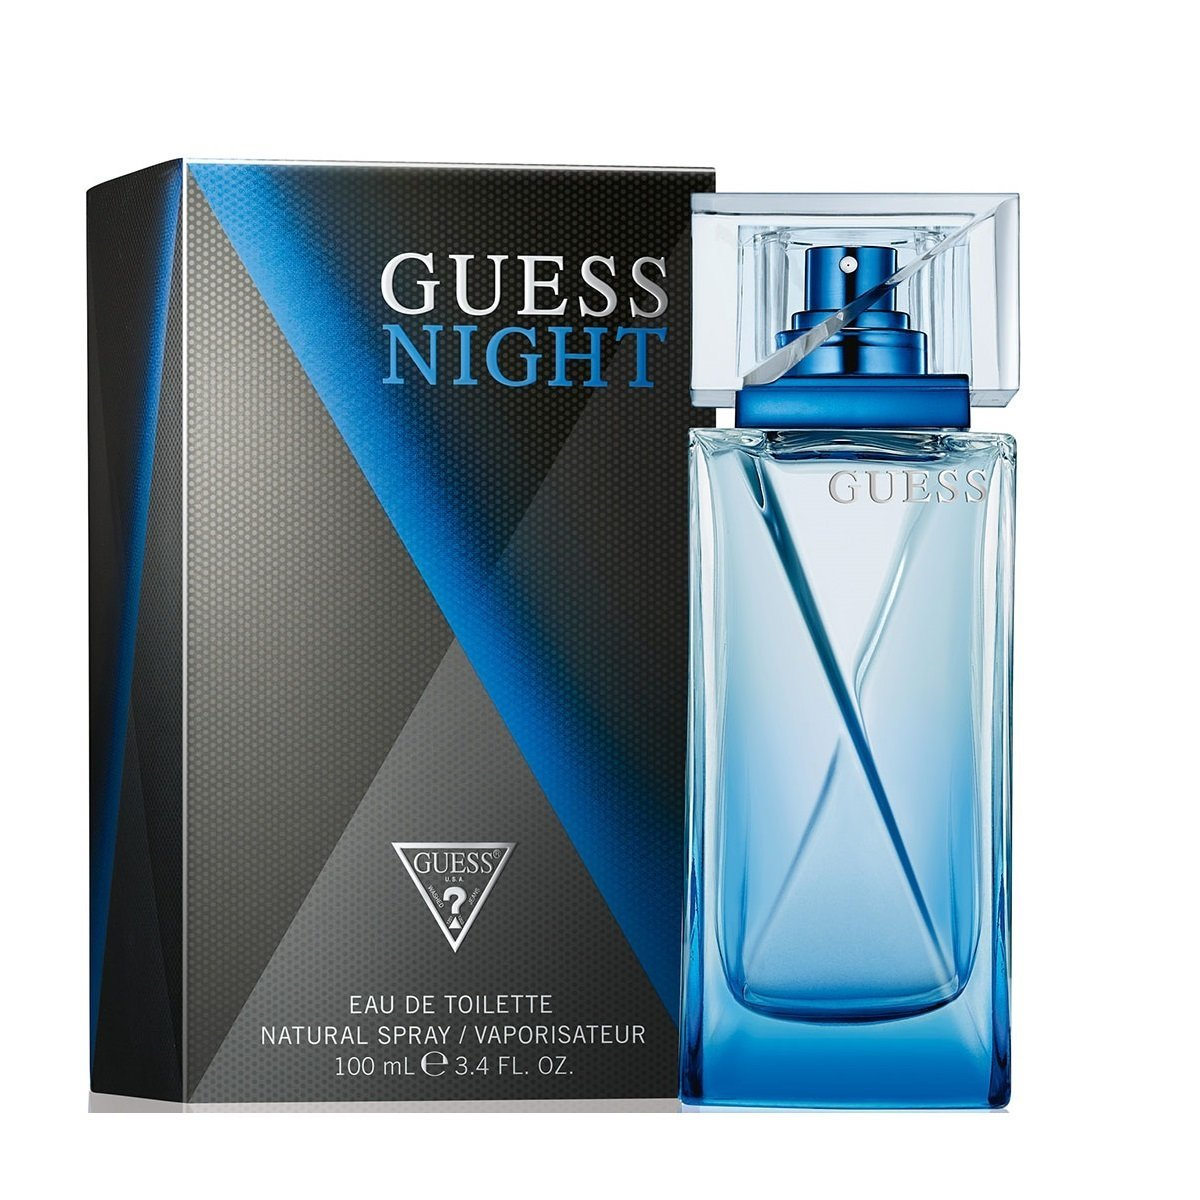 GUESS NIGHT 100ml EDT